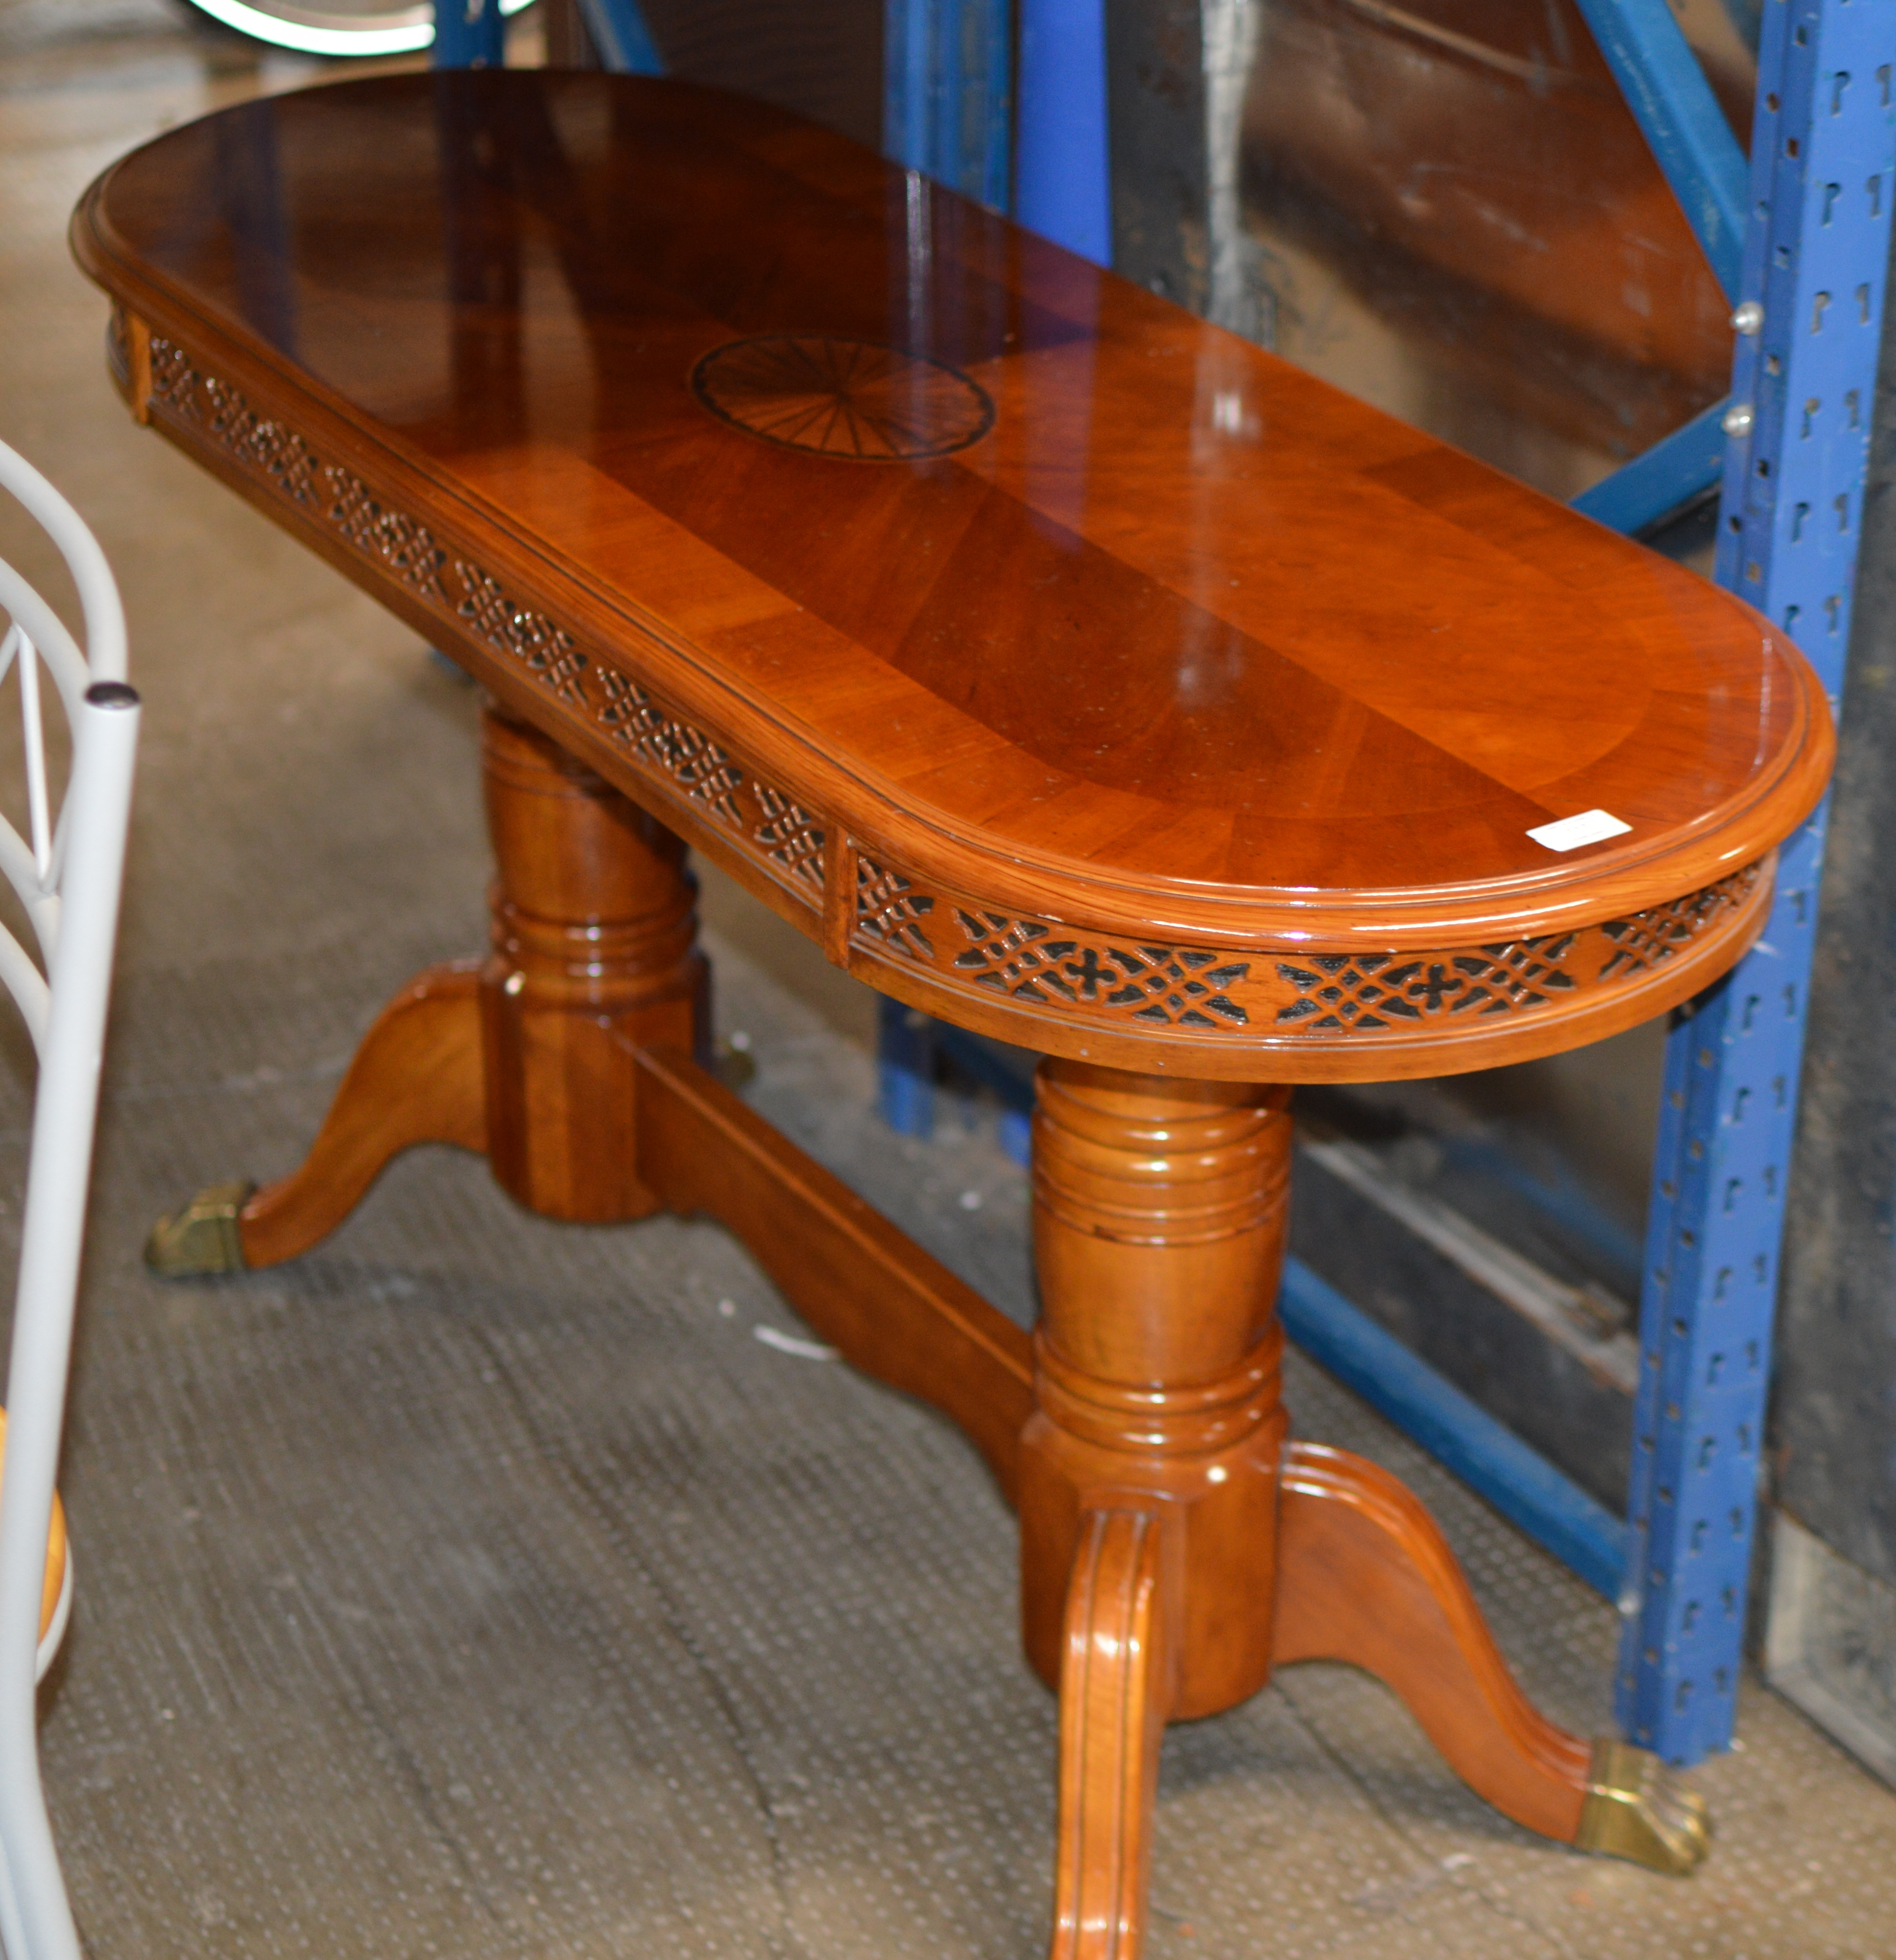 Lot 117 - REPRODUCTION YEW WOOD CONSOLE TABLE